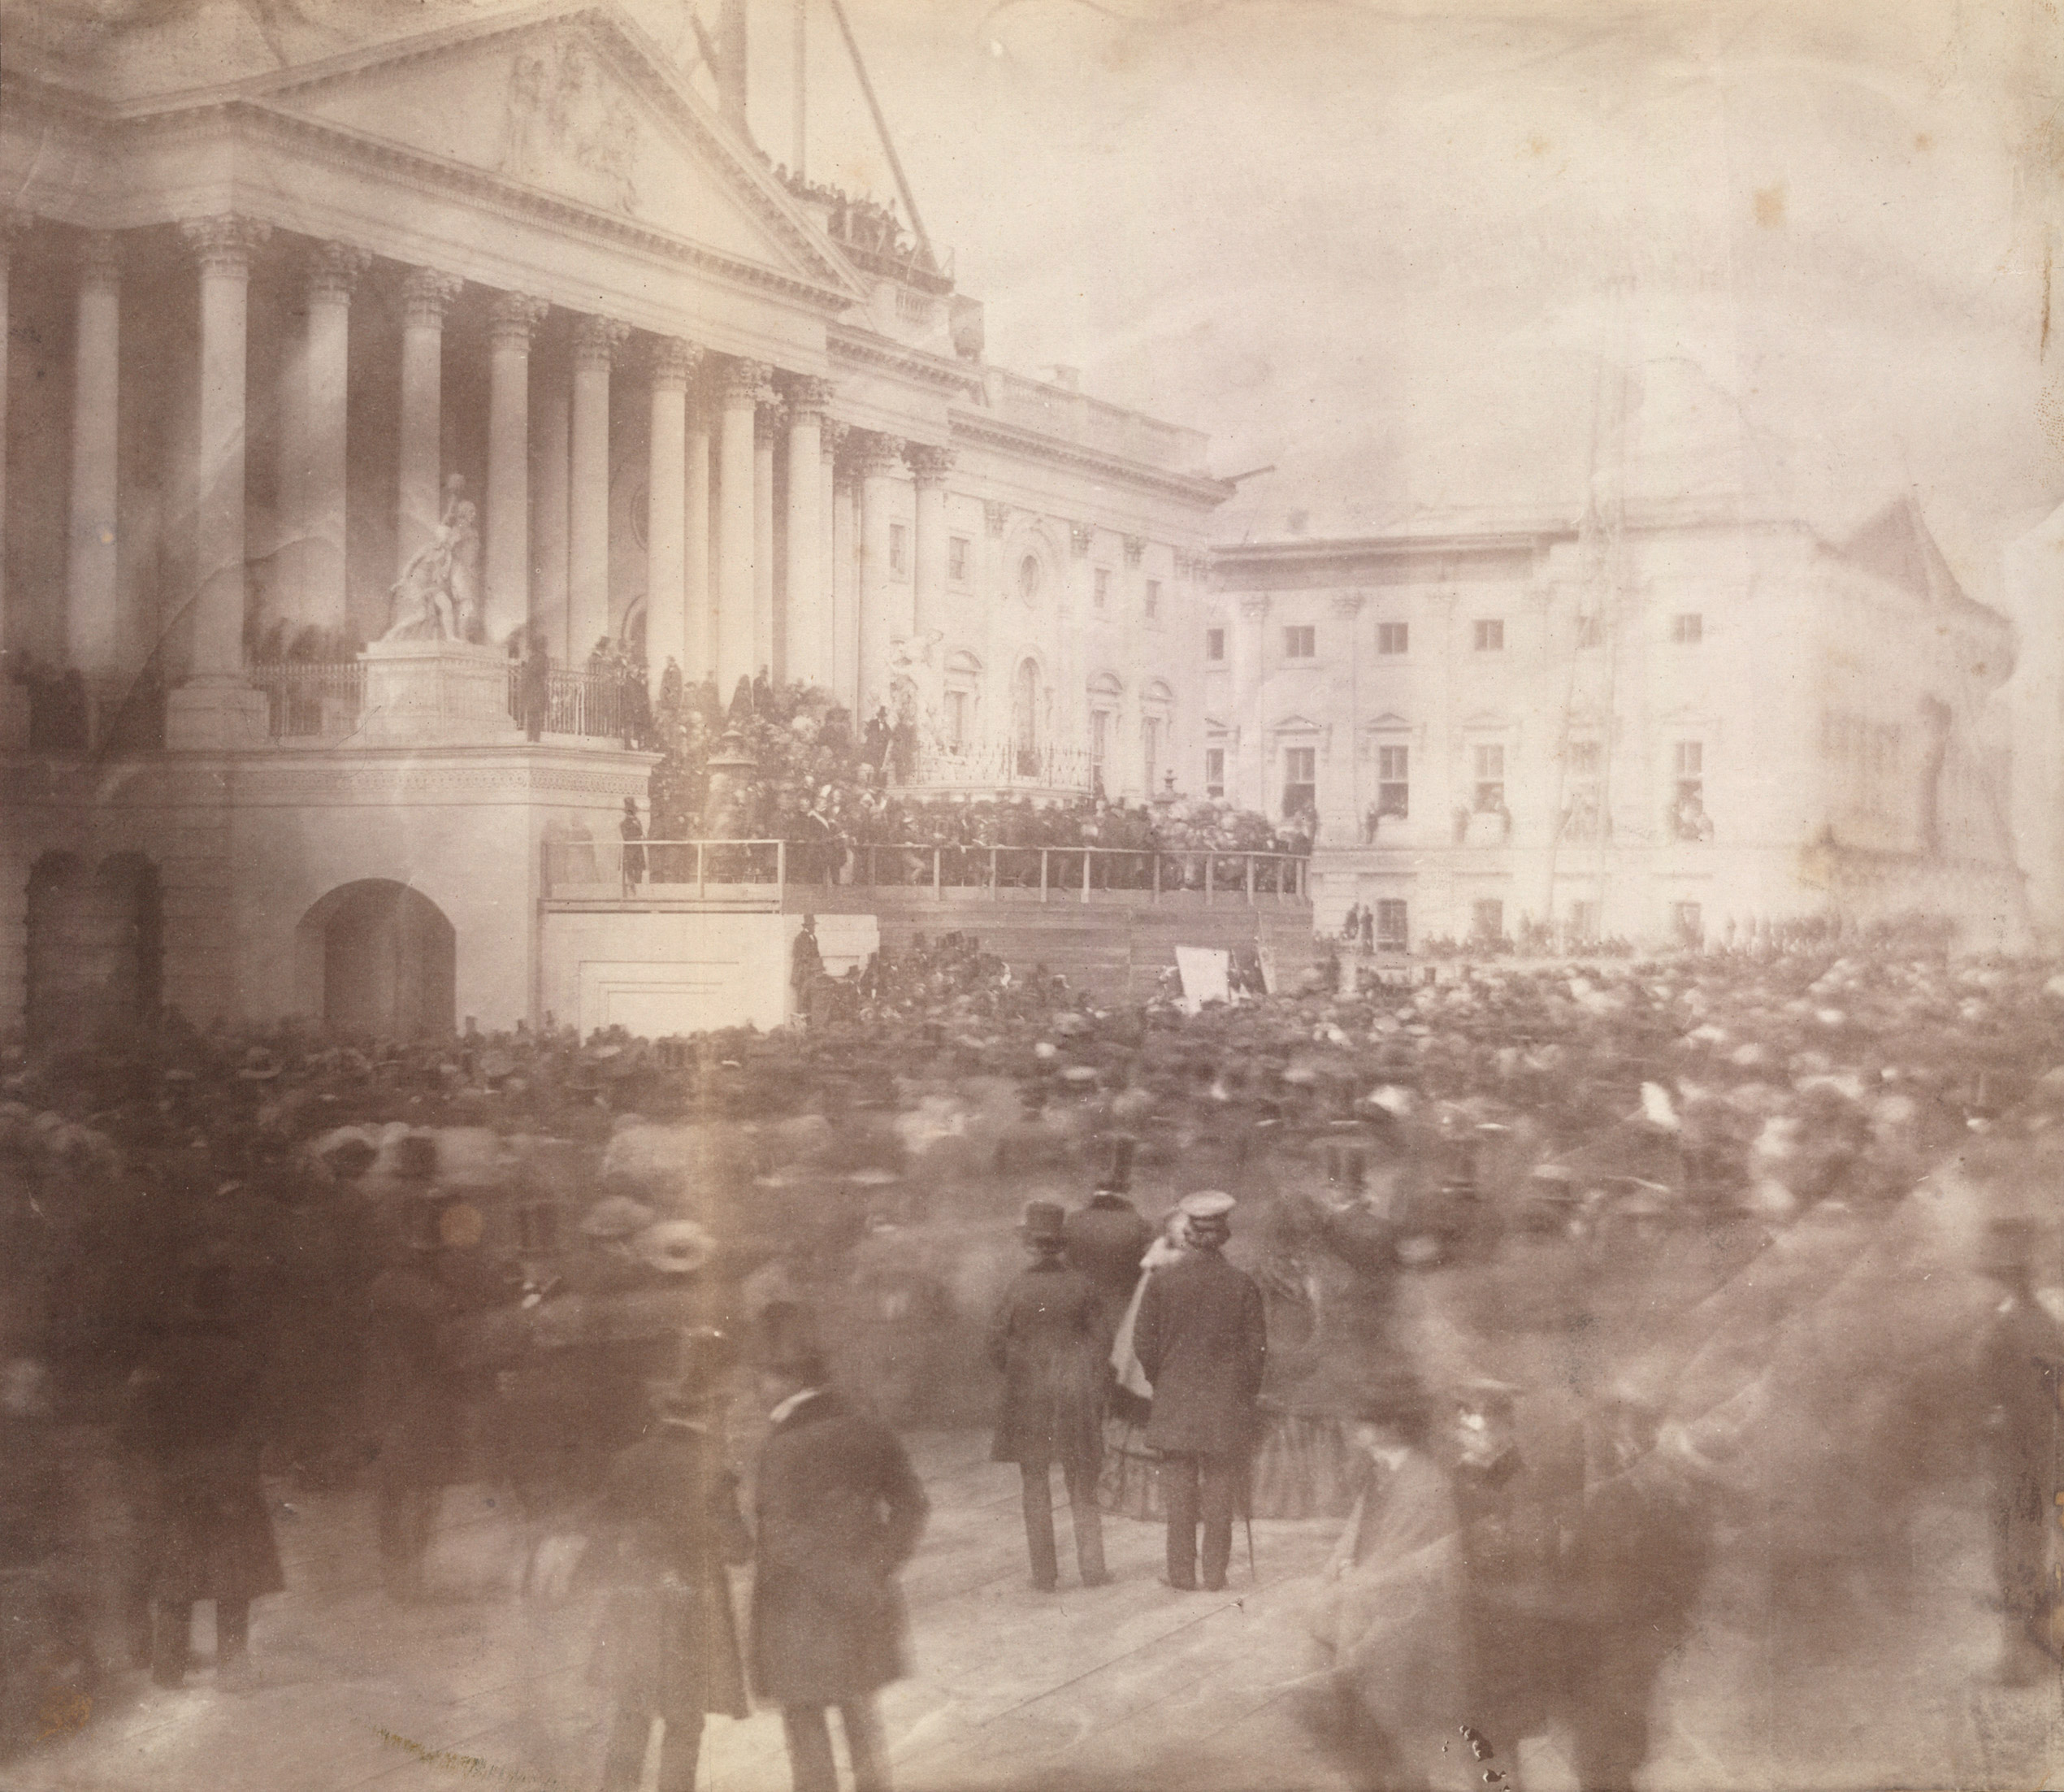 Inauguration of James Buchanan, President of the United States, at the east front of the U.S. Capitol, March 4, 1857.